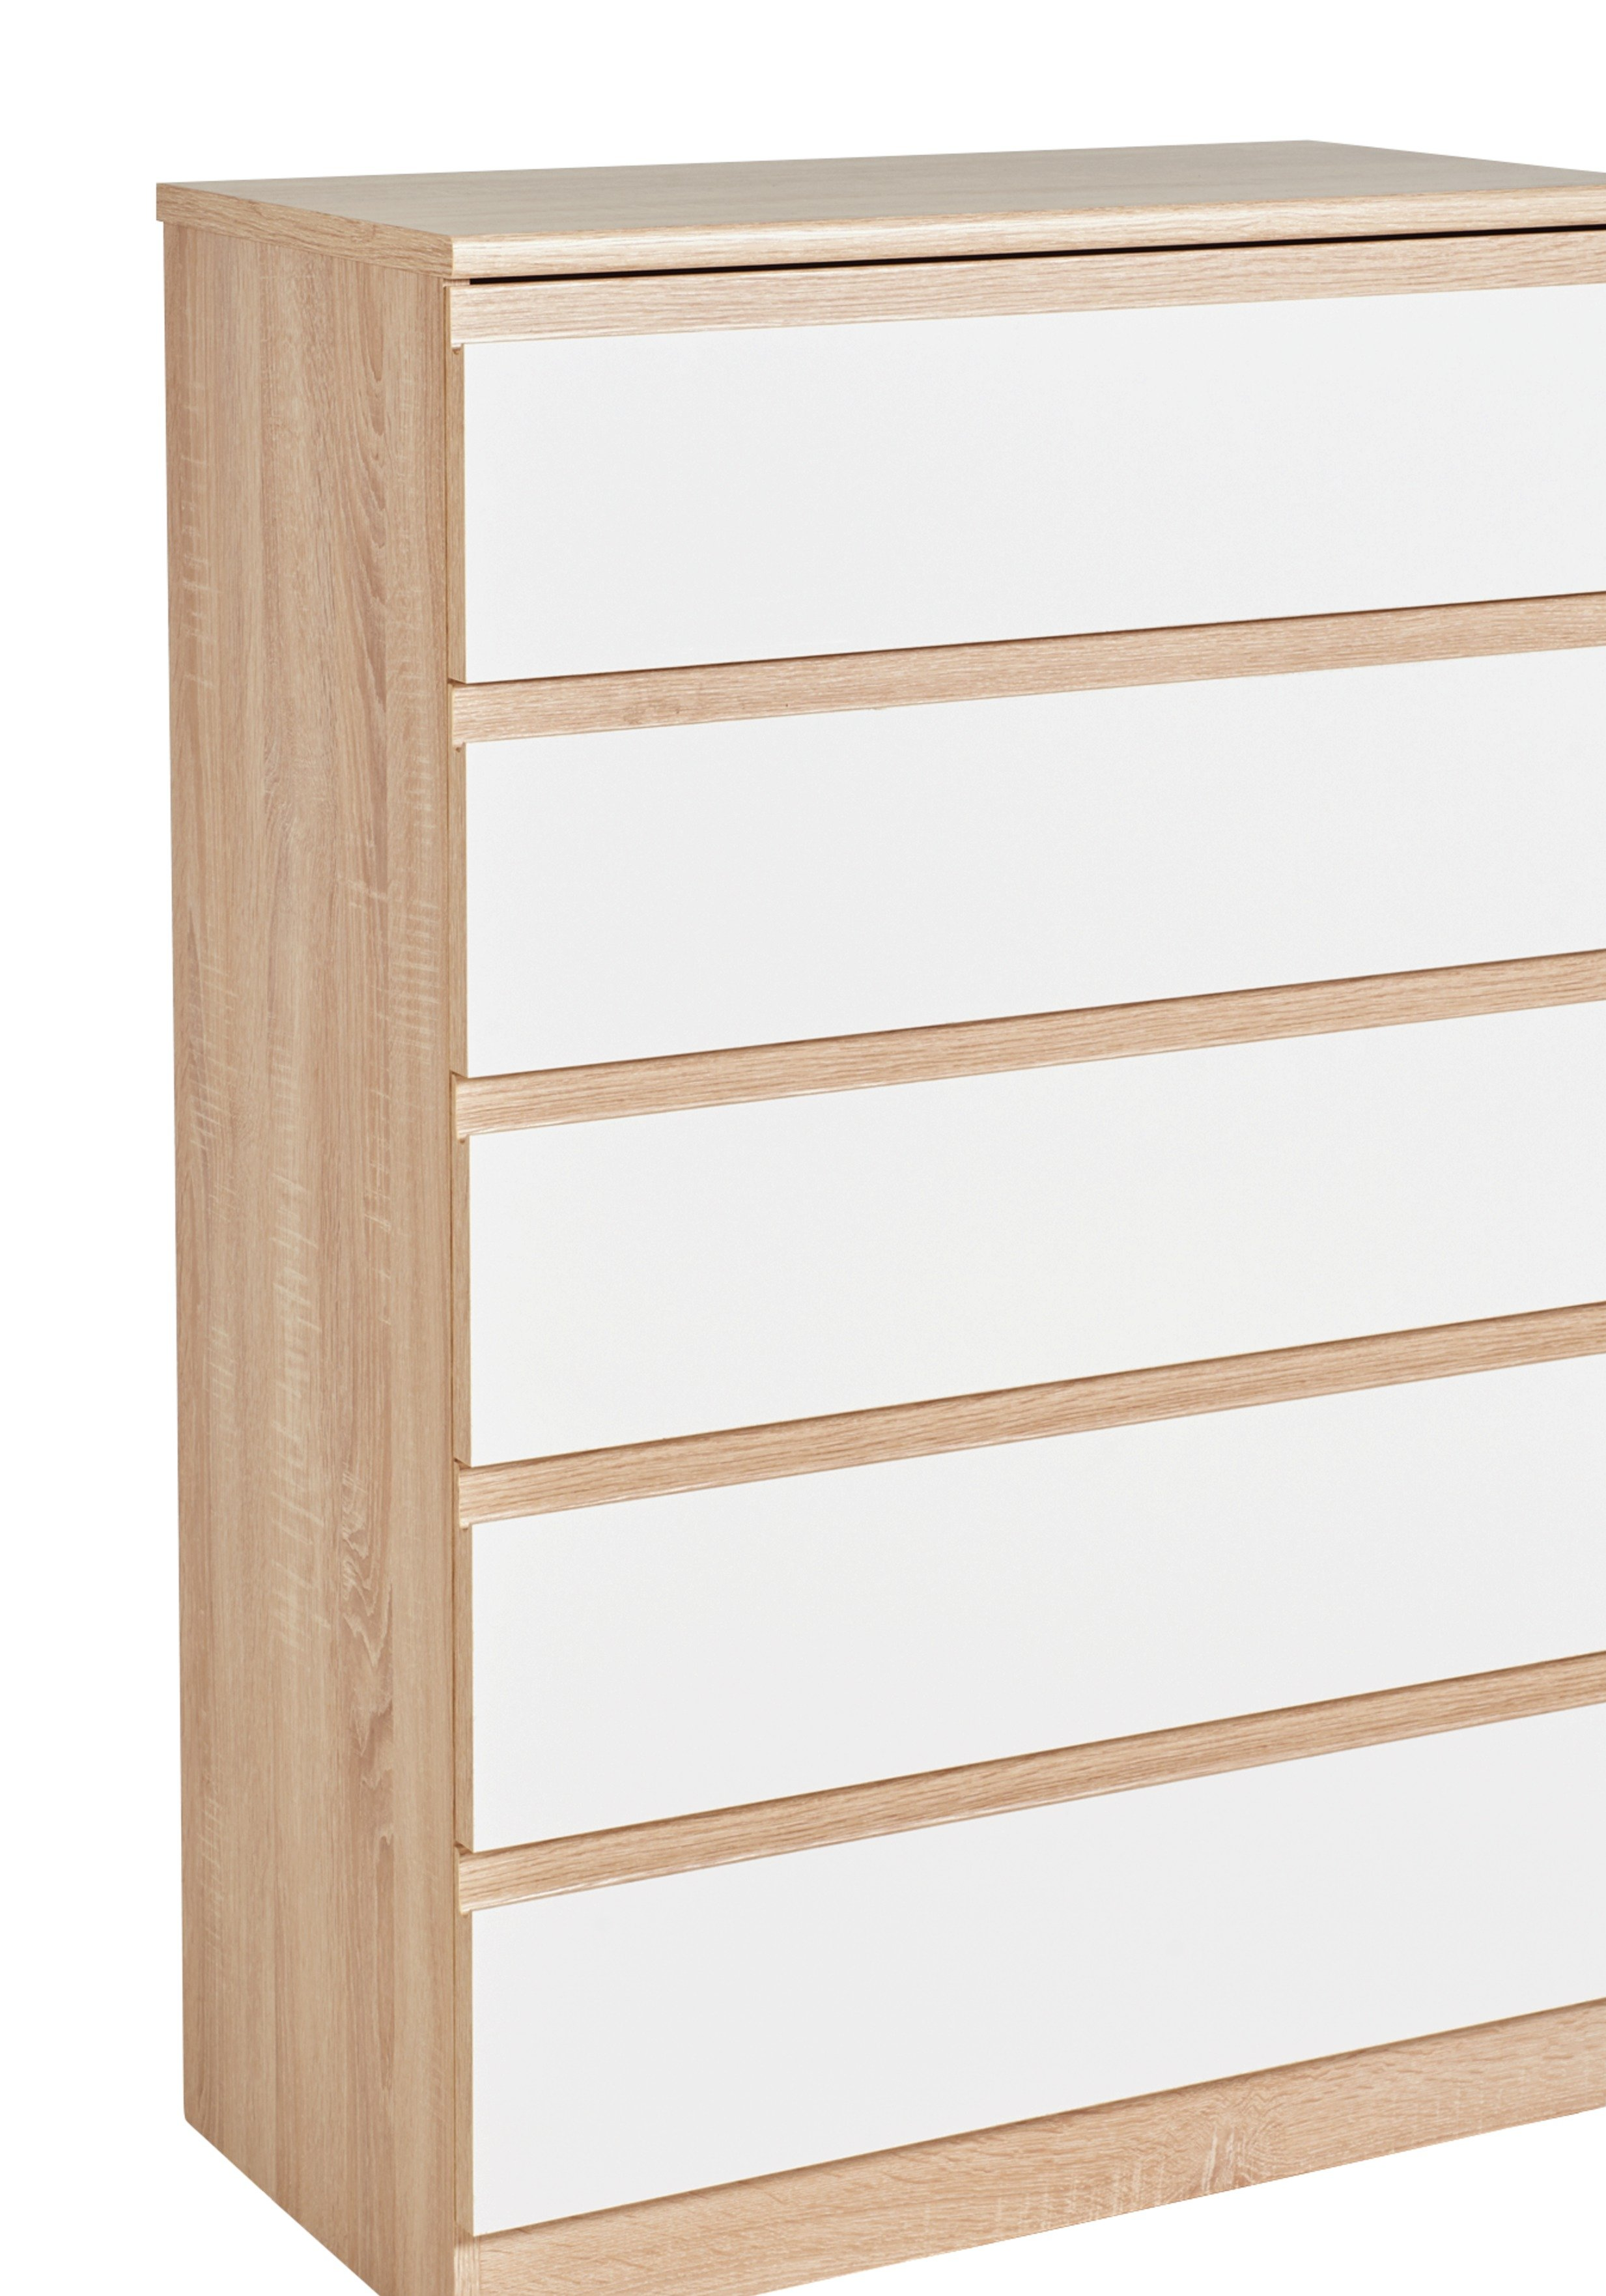 Image of Avenue 5 Drawer Chest - Natural Oak Effect and White Gloss